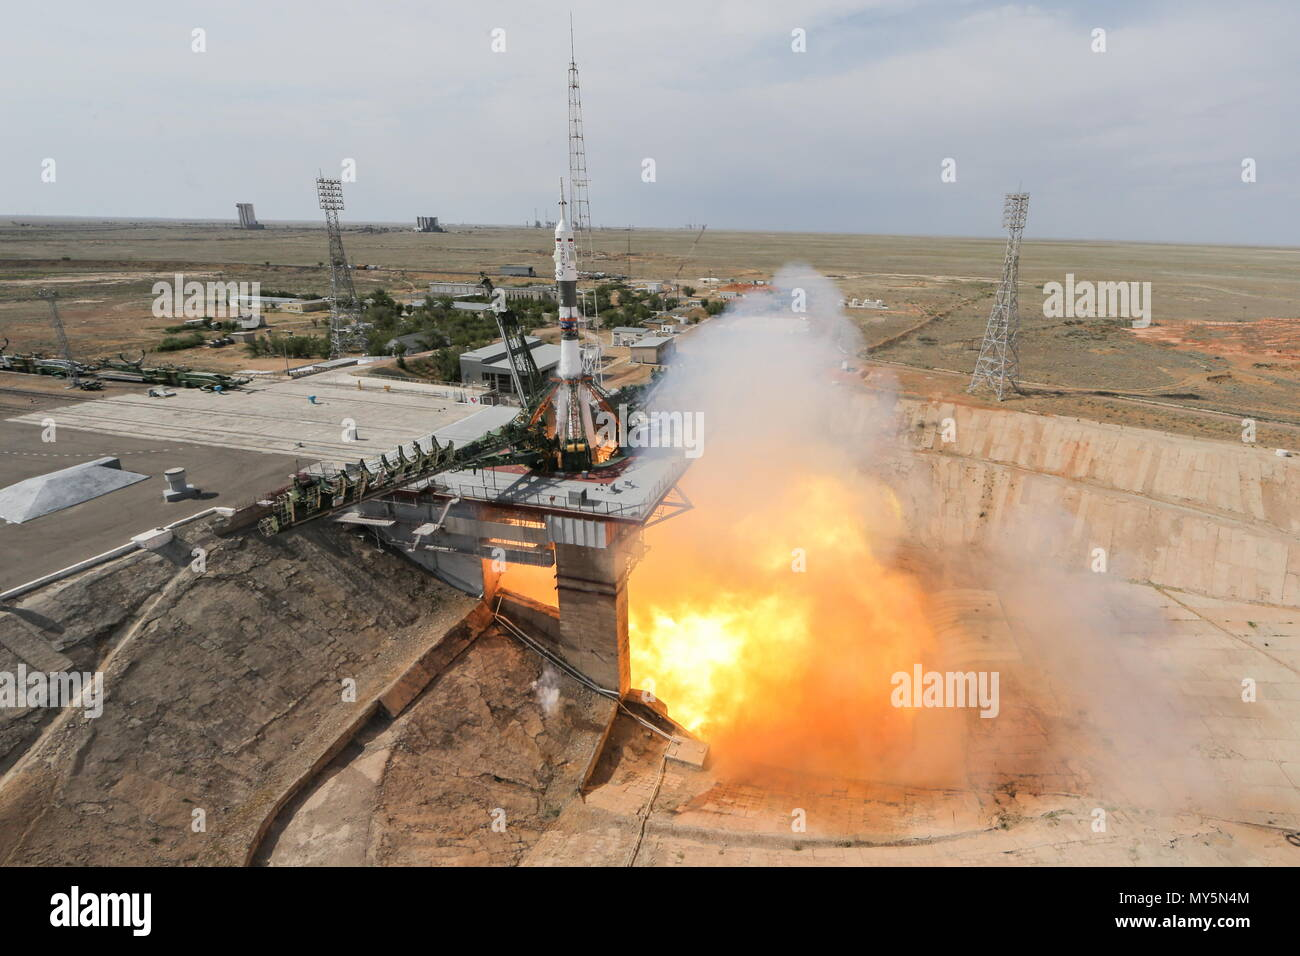 Kazakhstan. 06th June, 2018. KYZYLORDA REGION, KAZAKHSTAN - JUNE 6, 2018: A Soyuz-FG rocket booster carrying the Soyuz MS-09 spacecraft with the ISS Expedition 56/57 prime crew members, European Space Agency (ESA) astronaut Alexander Gerst, Roscosmos cosmonaut Sergey Prokopyev, and NASA astronaut Serena M. Aunon-Chancellor, aboard blasts off to the International Space Station from the Baikonur Cosmodrome. Sergei Savostyanov/TASS Credit: ITAR-TASS News Agency/Alamy Live News - Stock Image